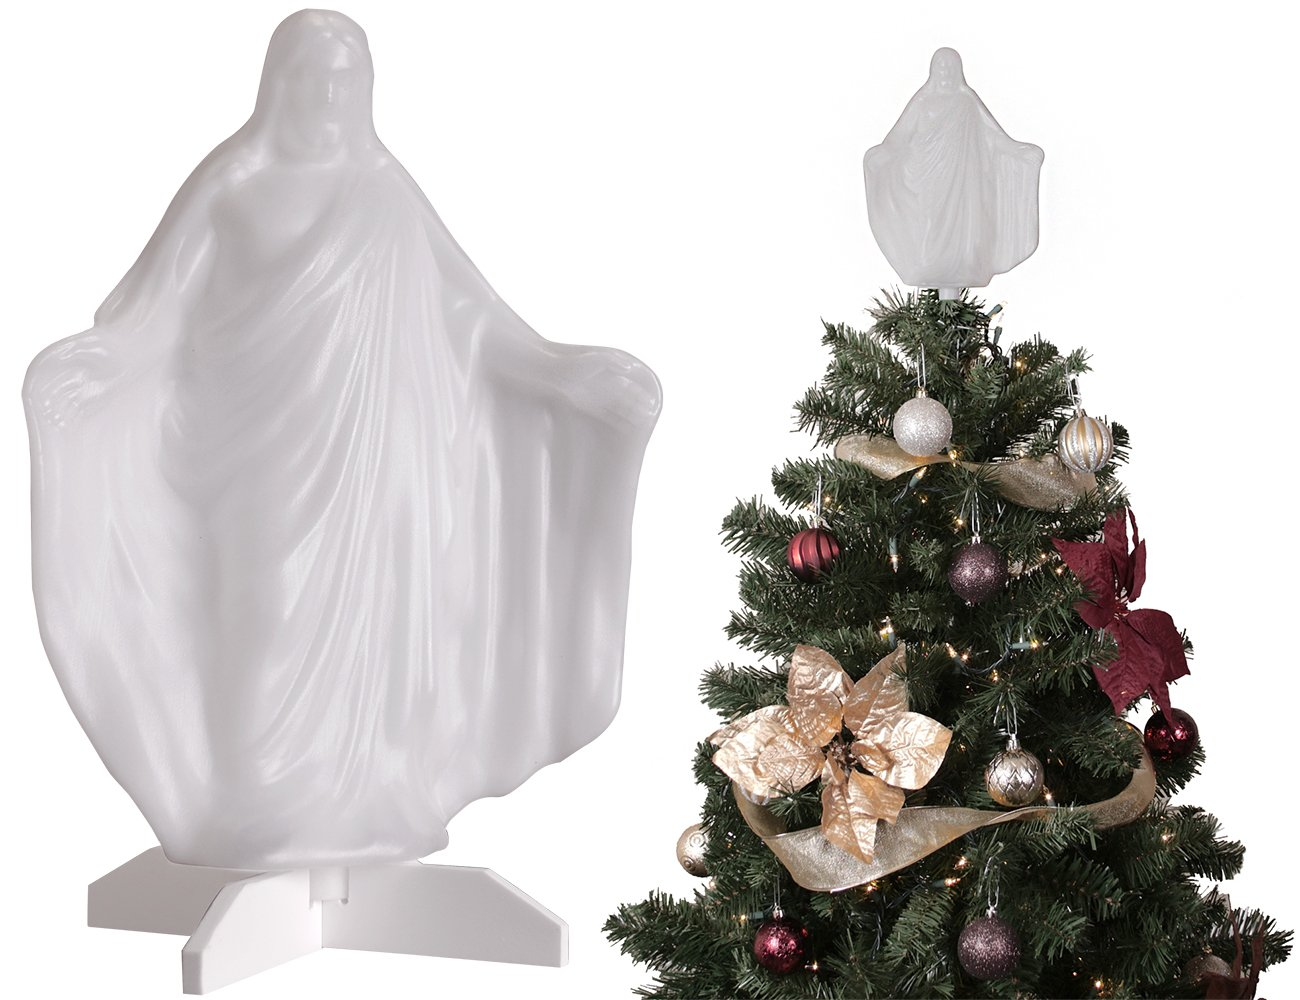 Amazon.com: Christmas Tree Ornament - Christ Tree Topper - 10 in ...